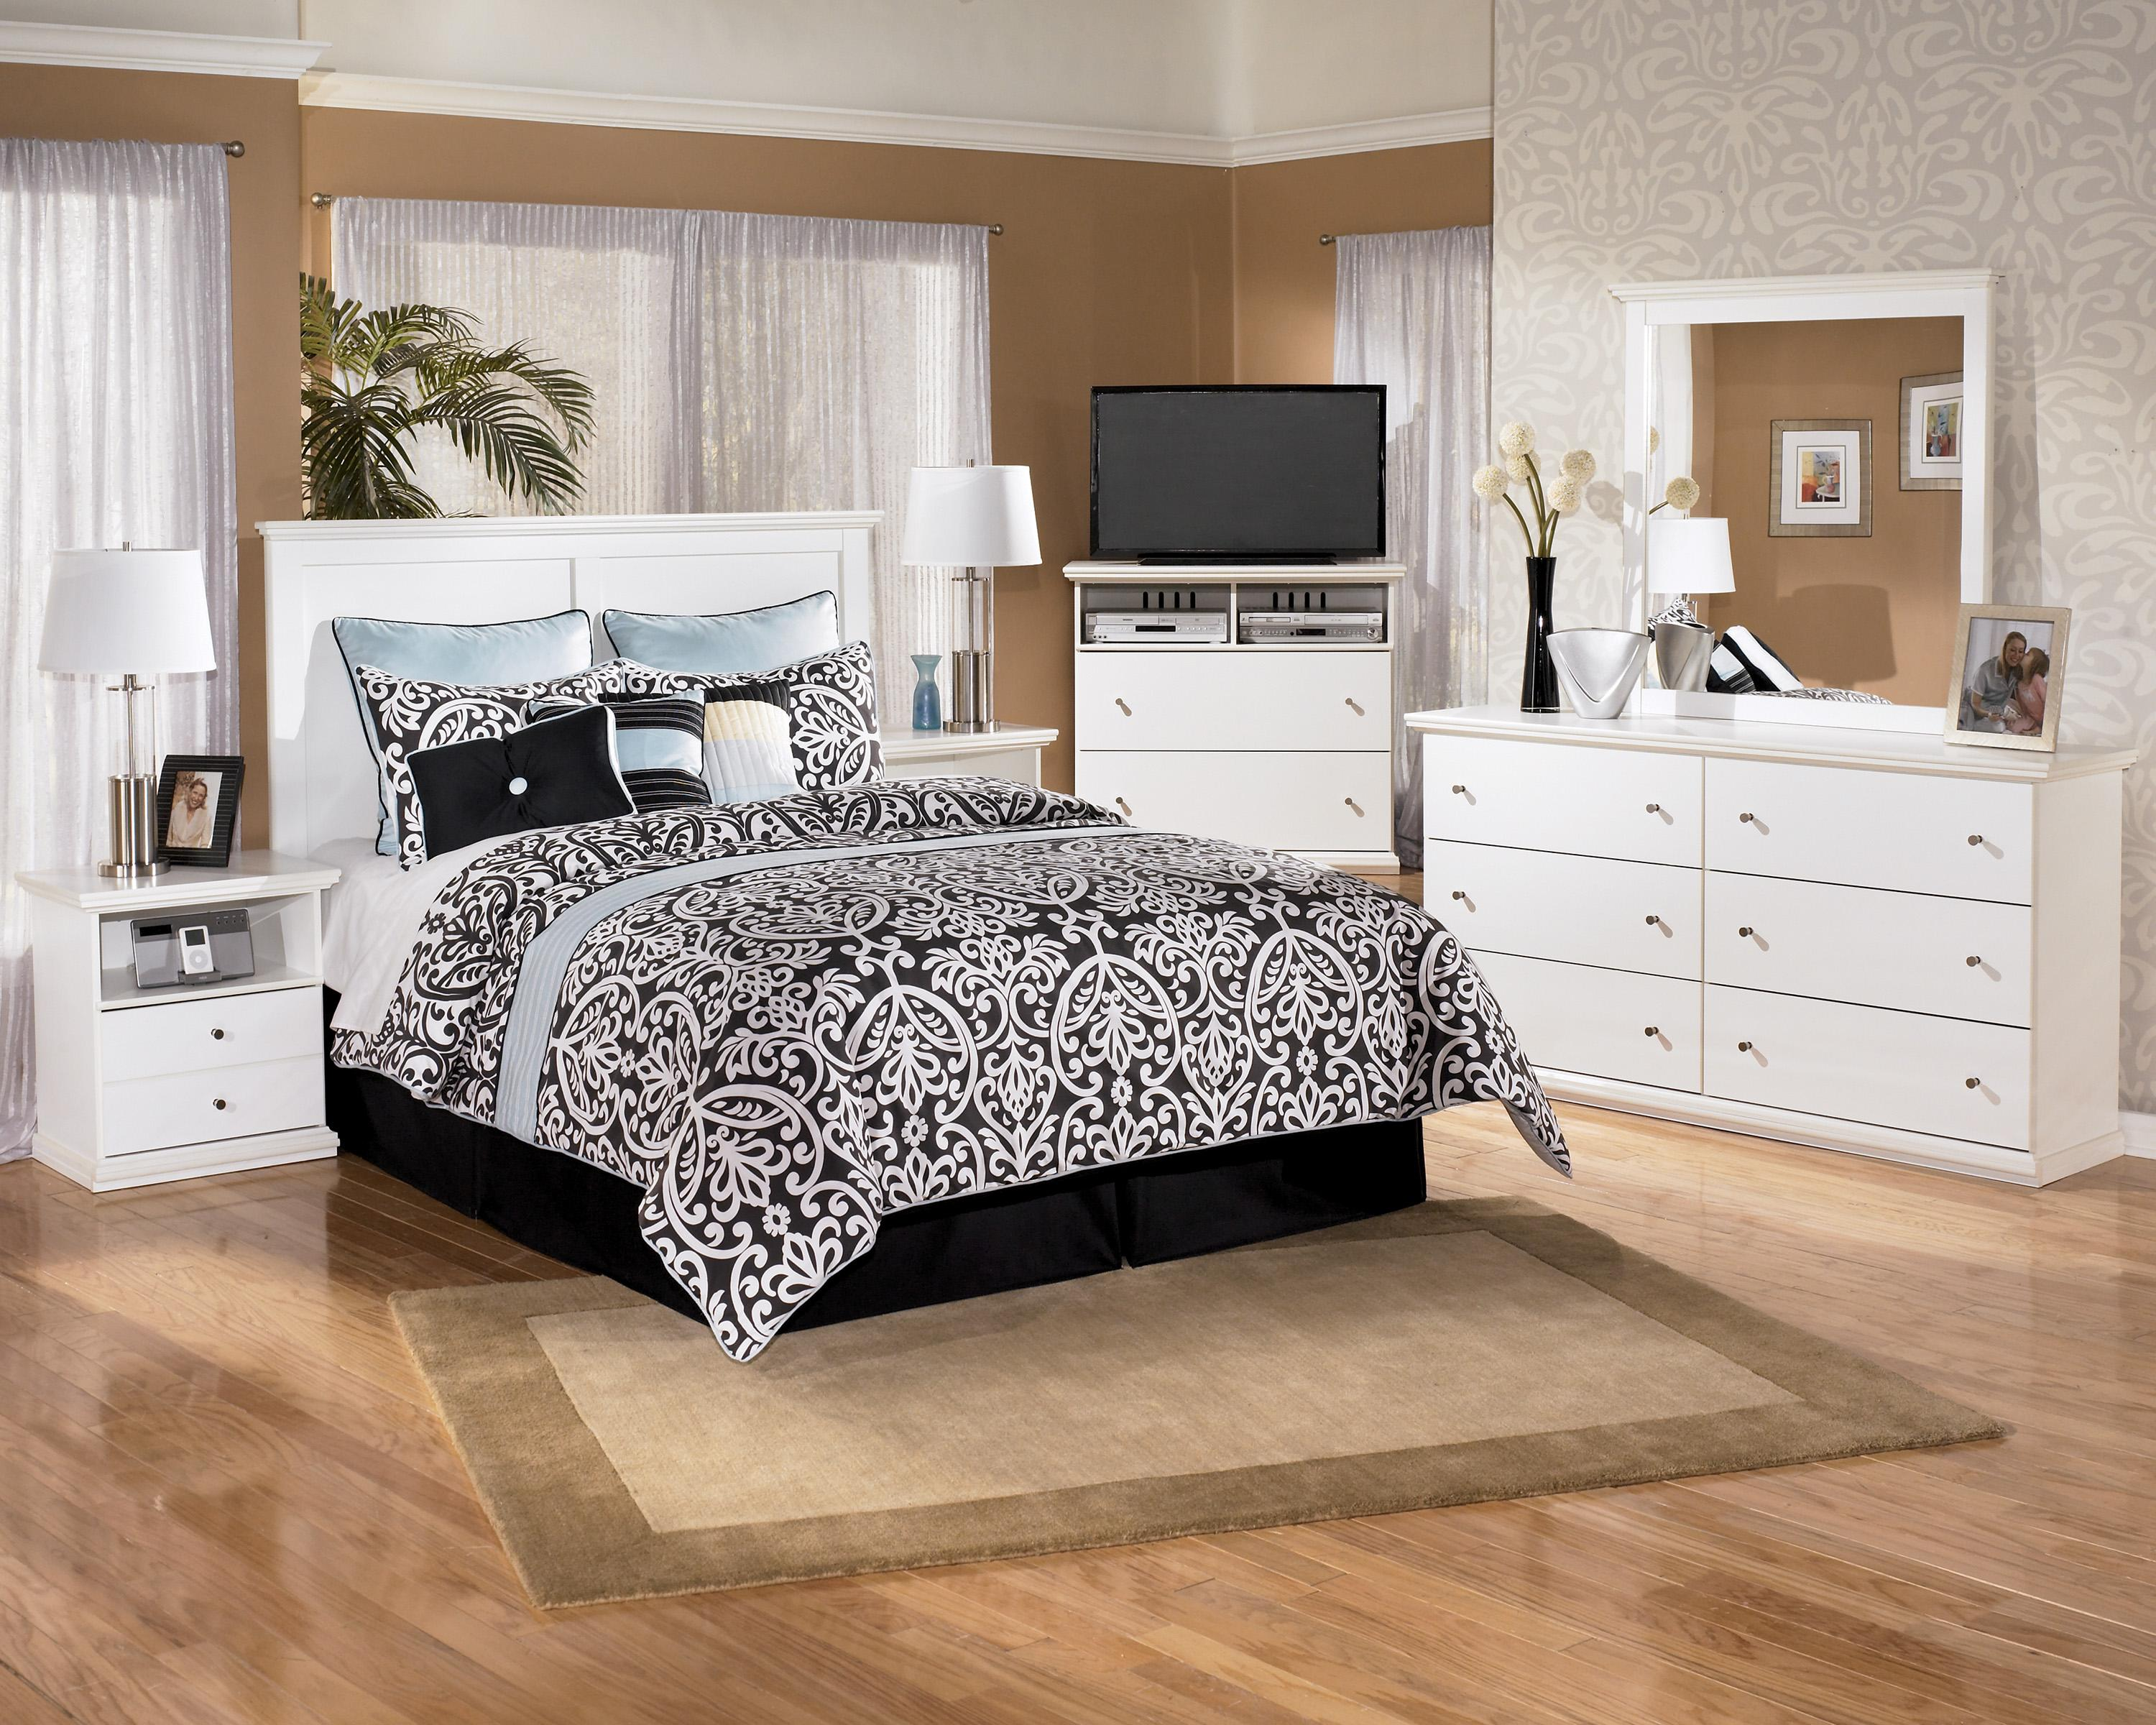 Signature Design by Ashley Bostwick Shoals Queen Bedroom Group ...